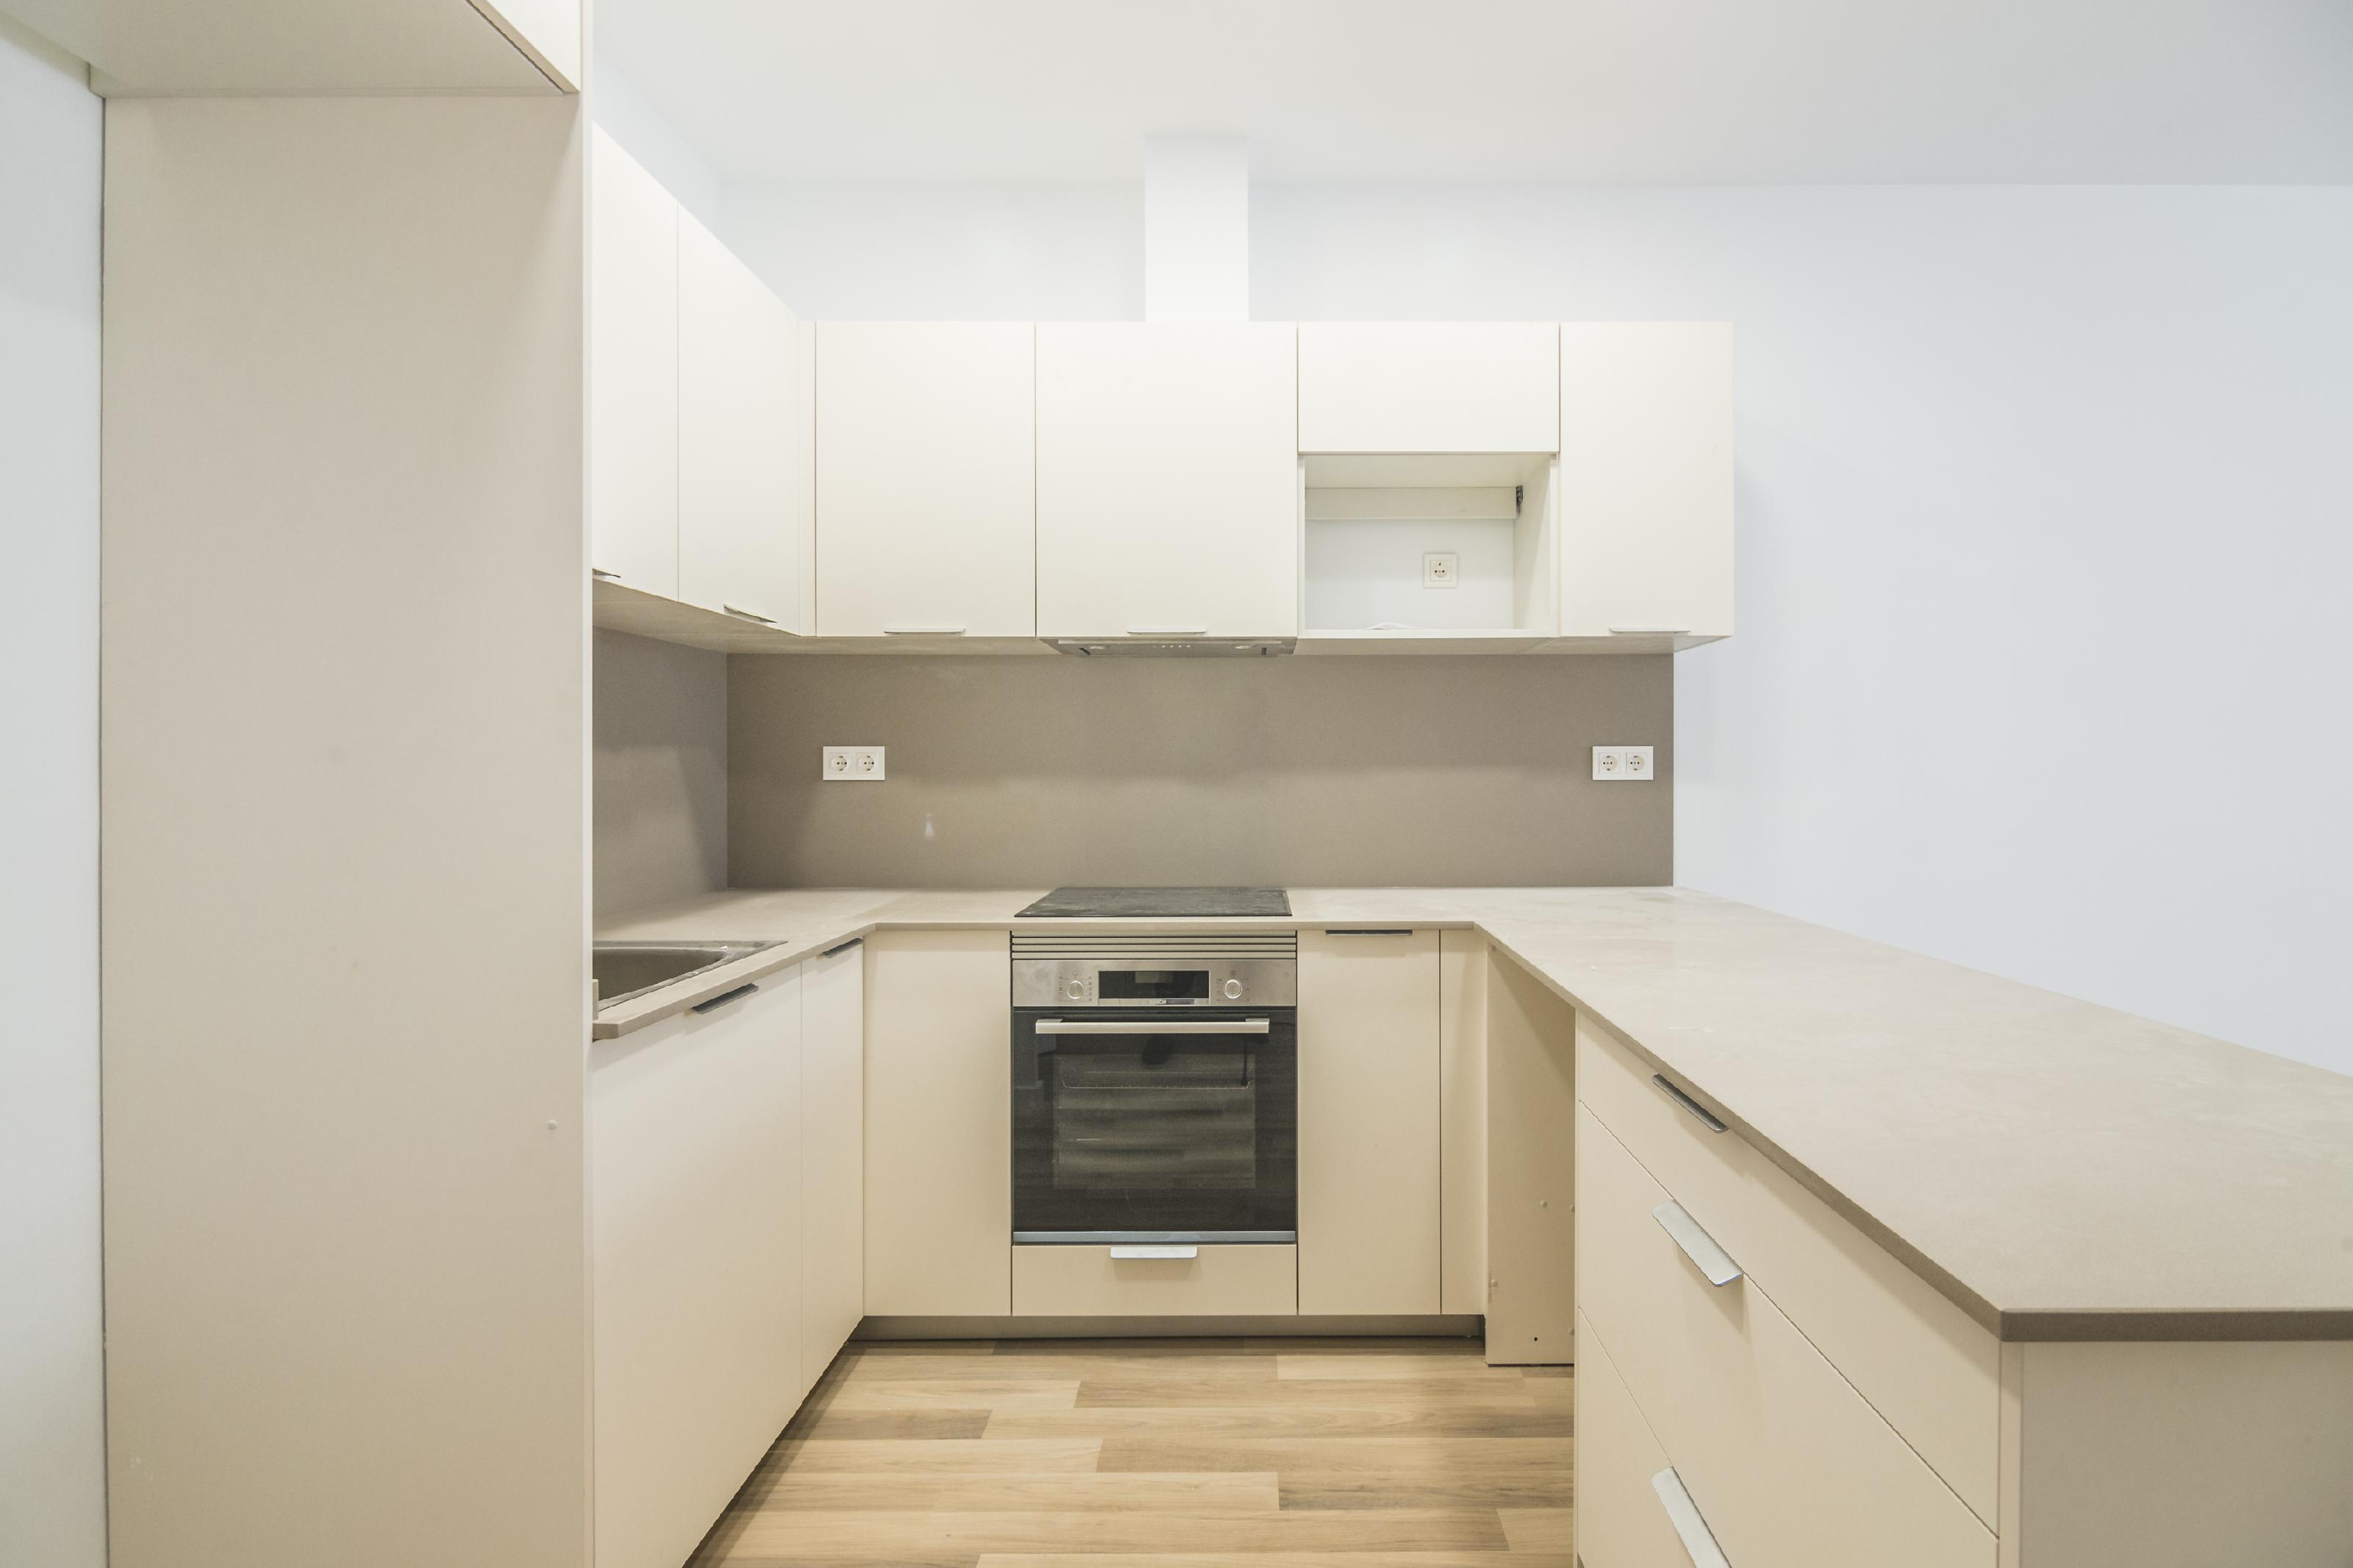 220652 Apartment for sale in Sarrià-Sant Gervasi, Sant Gervasi-Galvany 4